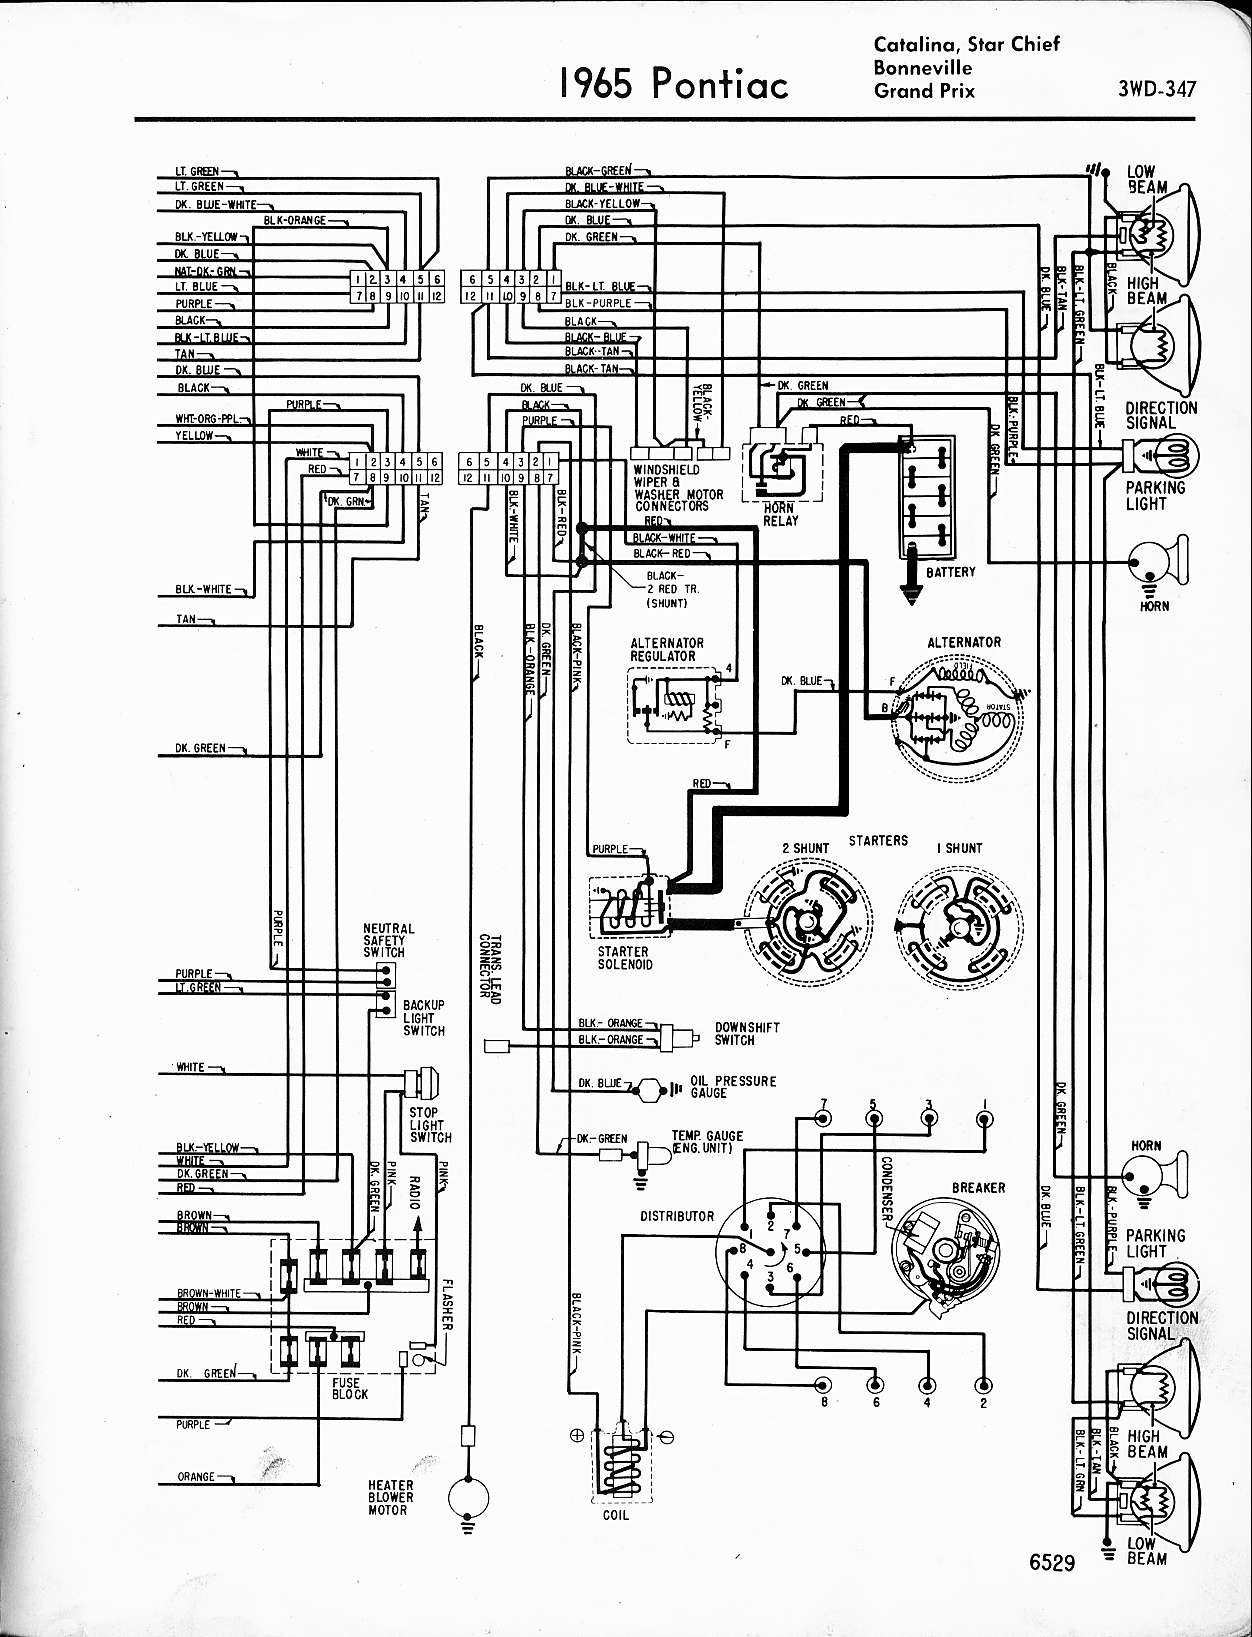 MWire5765 347 wallace racing wiring diagrams 2006 Grand Prix Engine Diagram at suagrazia.org